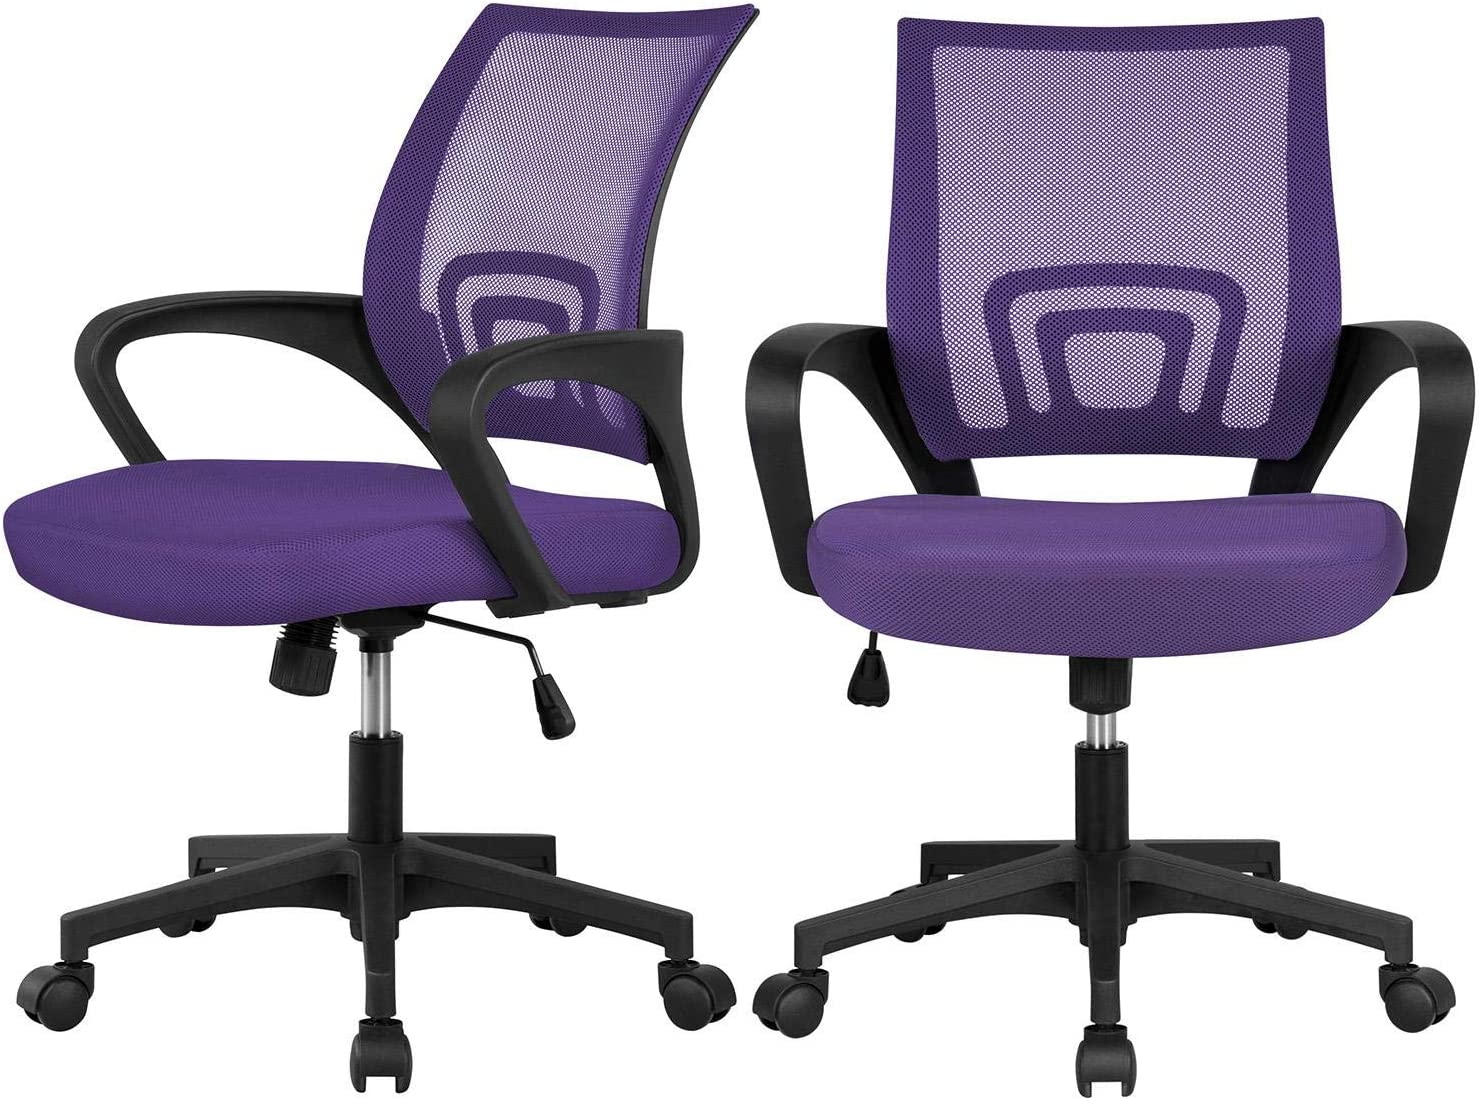 YAHEETECH 2Pcs Mesh Adjustable Desk Chairs, Ergonomic Executive Chairs with Lumbar Support for Back Pain Purple